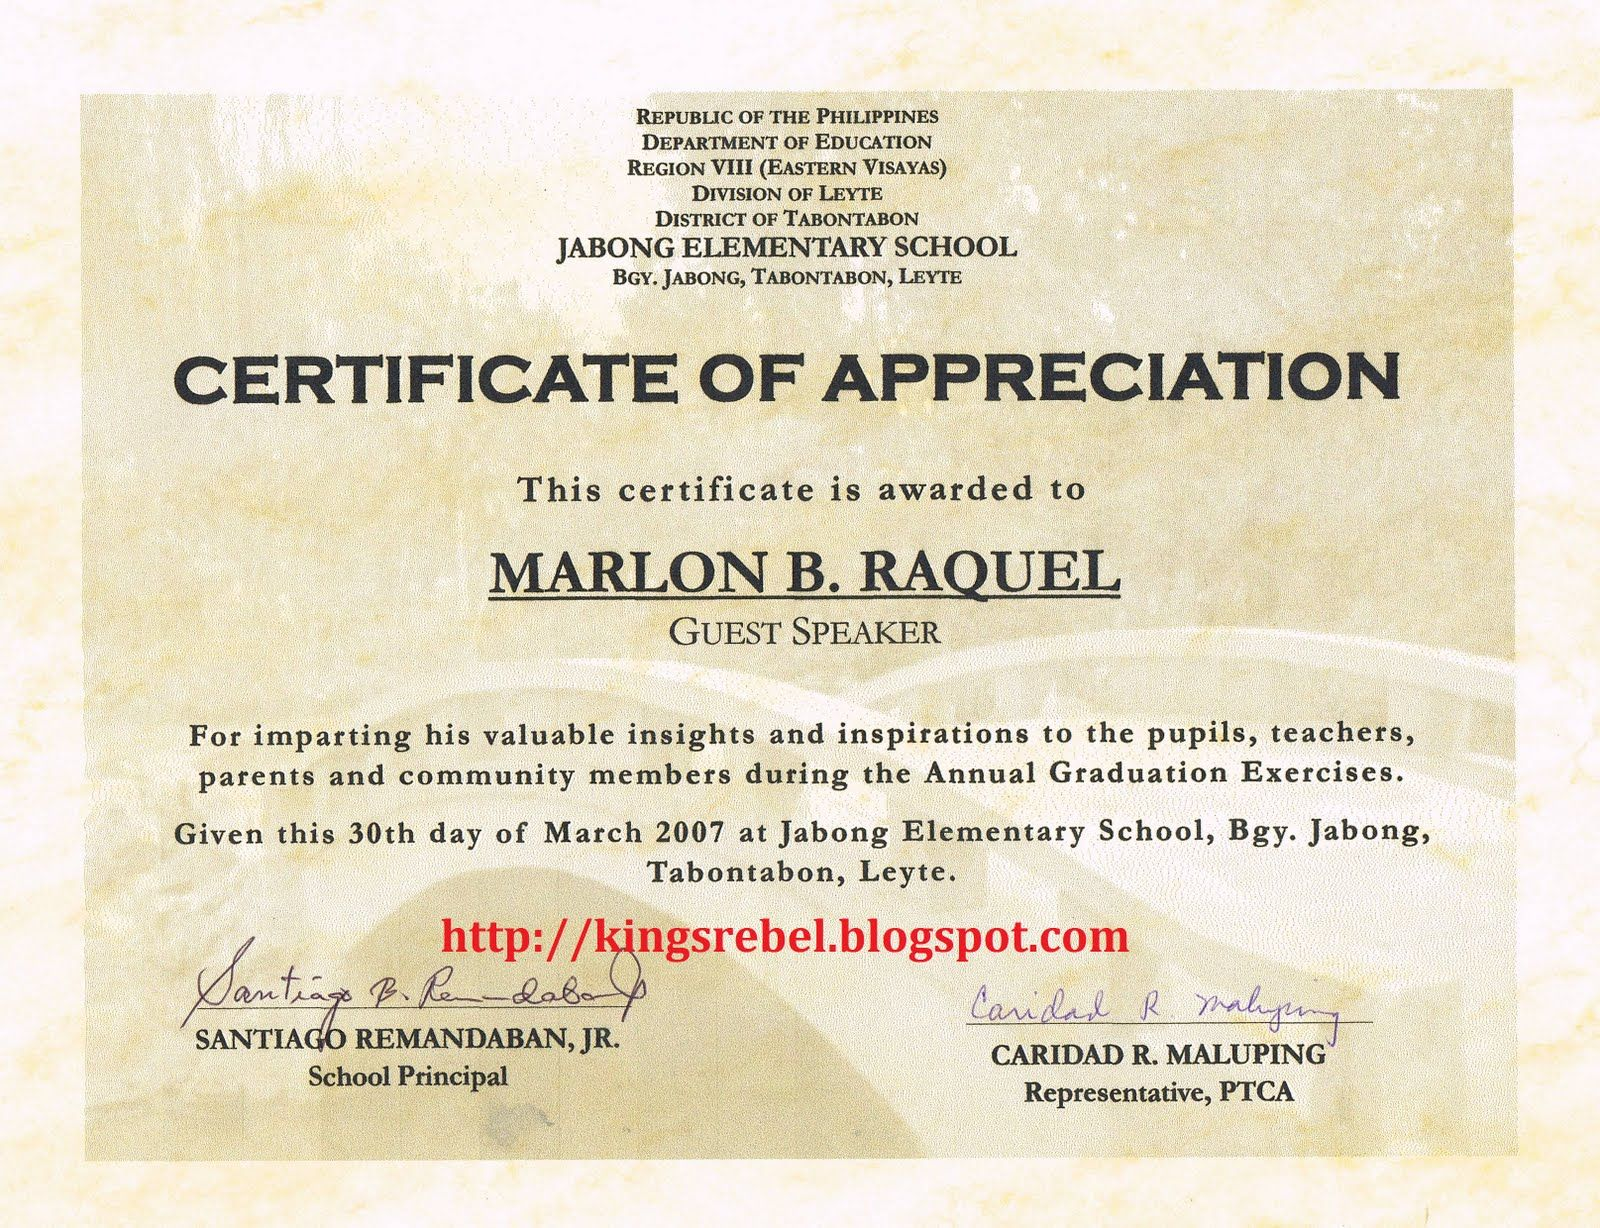 Example Of Certificate Of Appreciation, Guest Speaker, Graduation Exercises  Of Jabong Elemetary School  Certificate Sayings